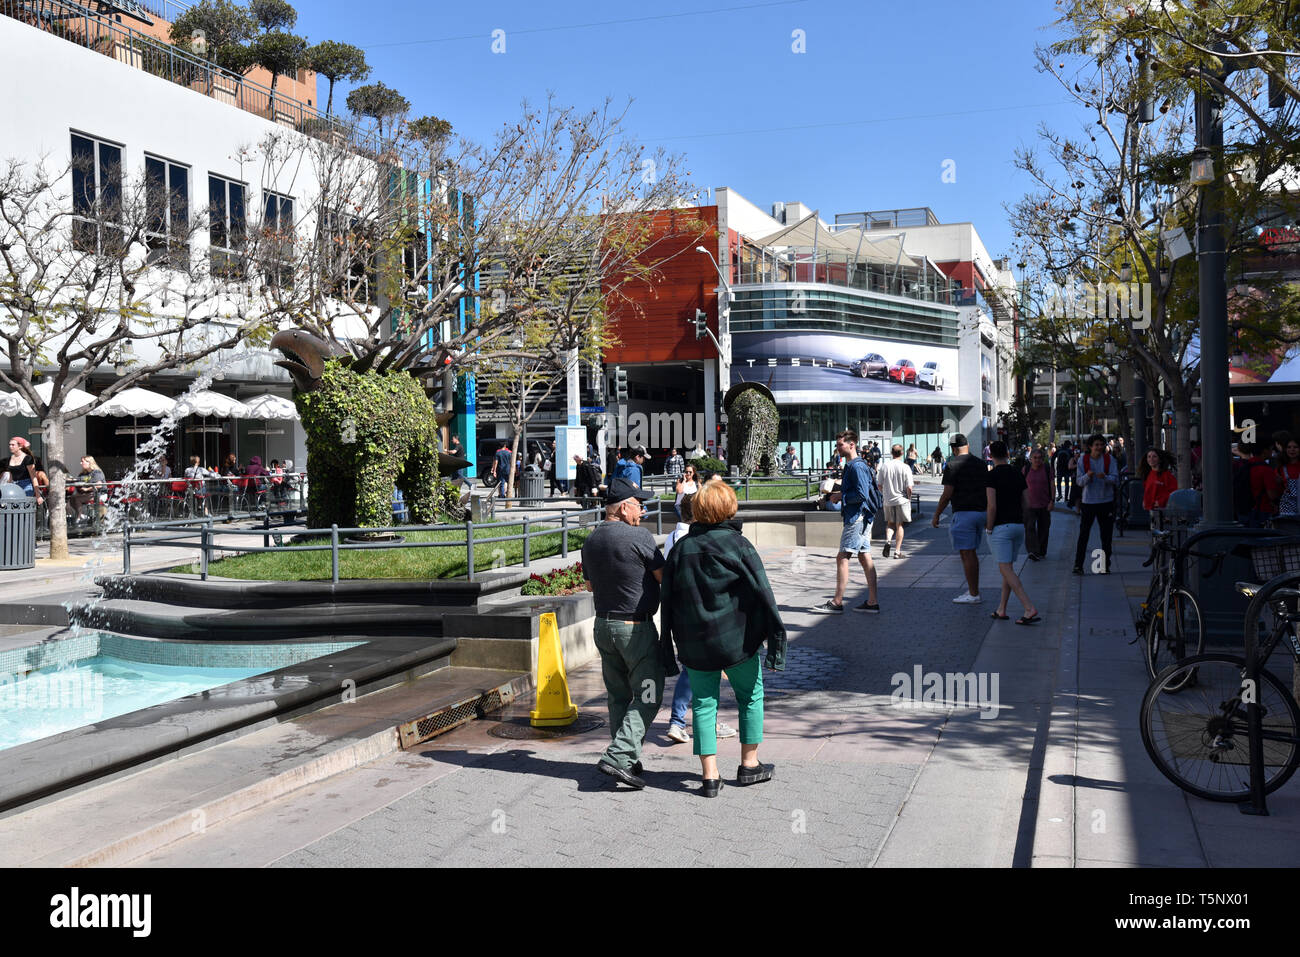 LOS ANGELES, CA/USA  - APRIL 11, 2019: Shoppers and tourist enjoying  the Third Street Promenade in Santa Monica, a premier shopping destination and t - Stock Image